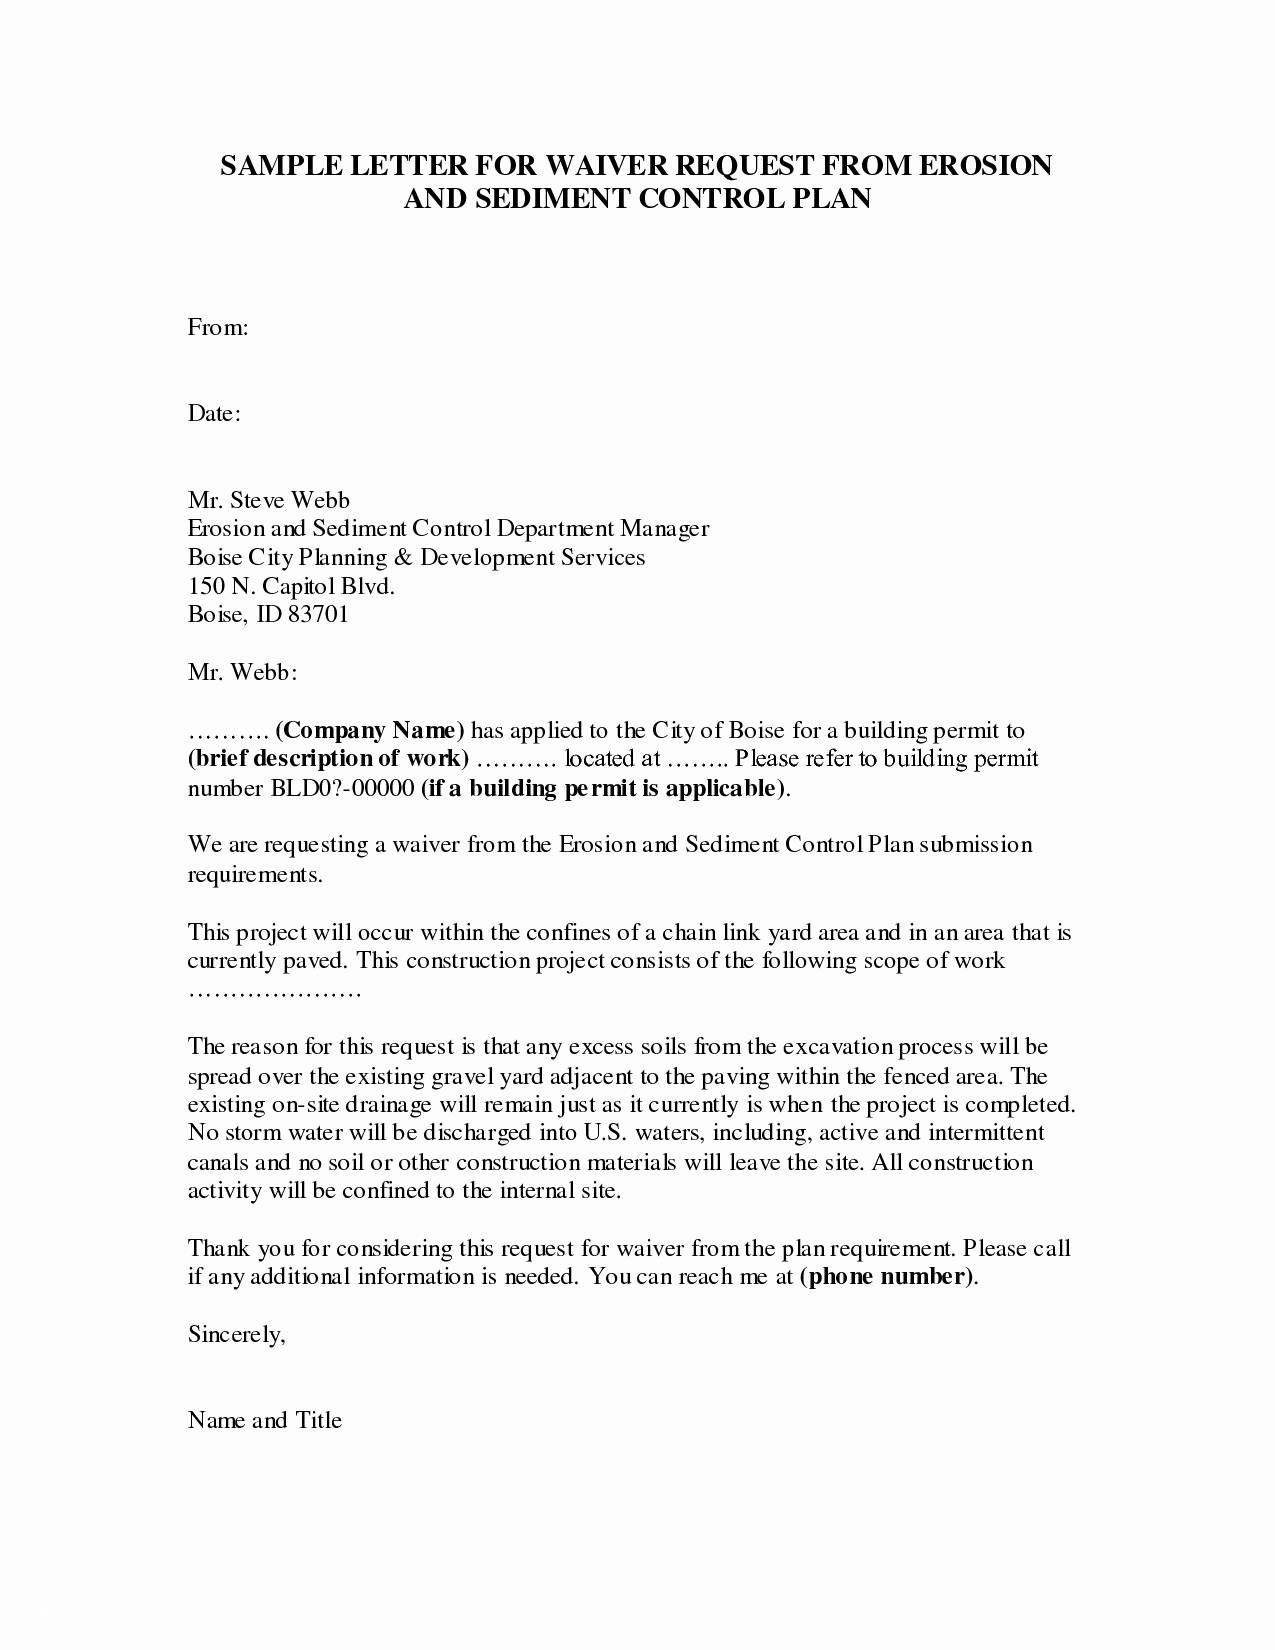 waiver letter template Collection-Resume Free Printable Best Waiver Responsibility Template Beautiful Sample Waiver Letter 16-h